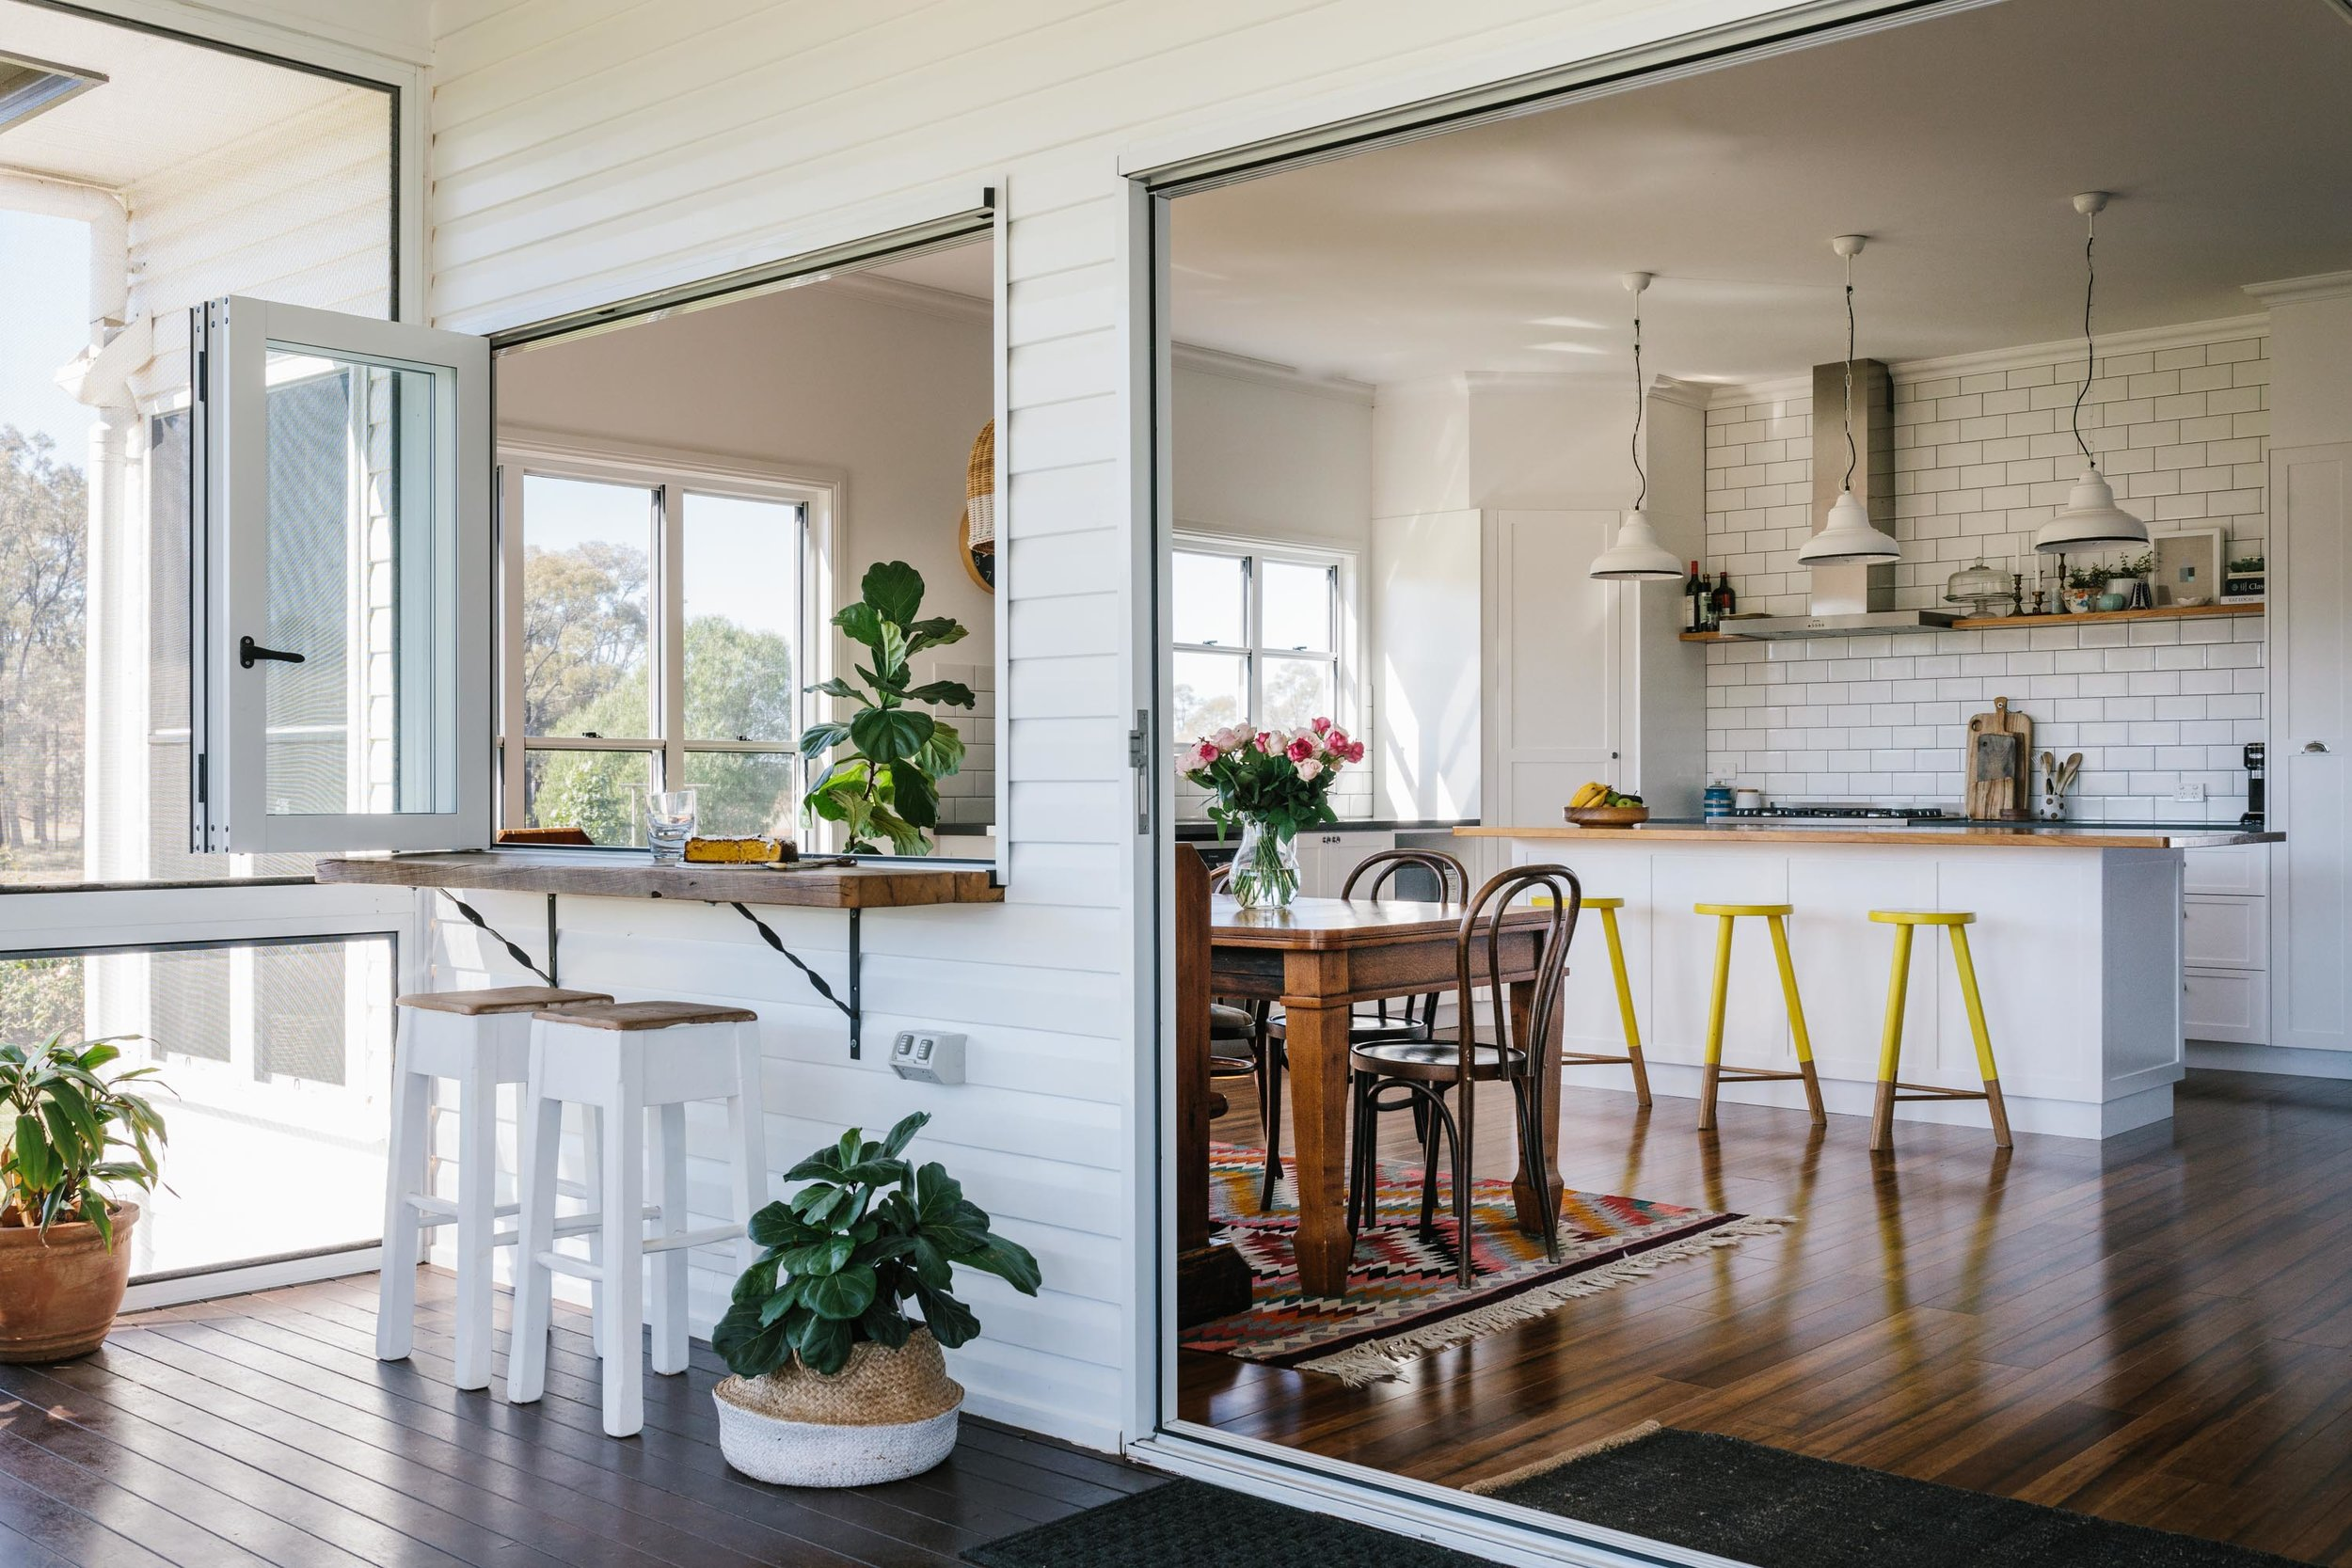 Marnie Hawson, Melbourne interior photographer for Hopewood Home and Country Style magazine